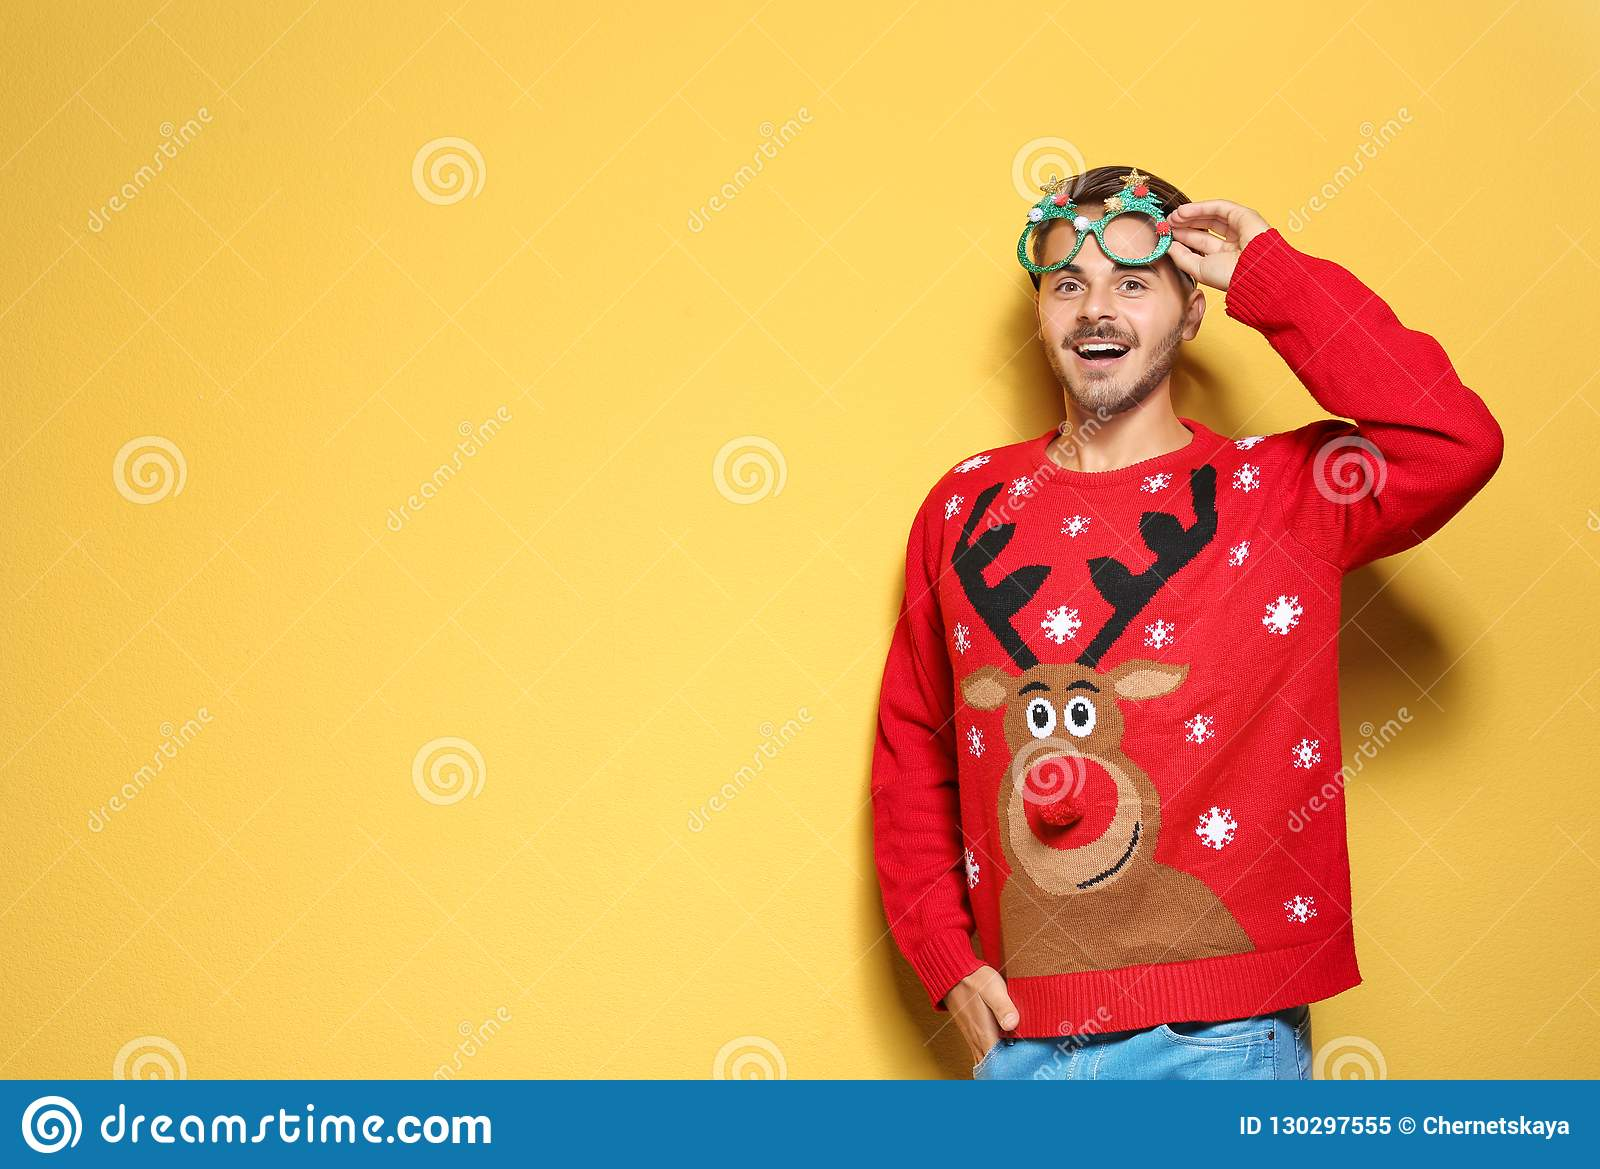 2 Person Christmas Sweater.Young Man In Christmas Sweater With Party Glasses On Color